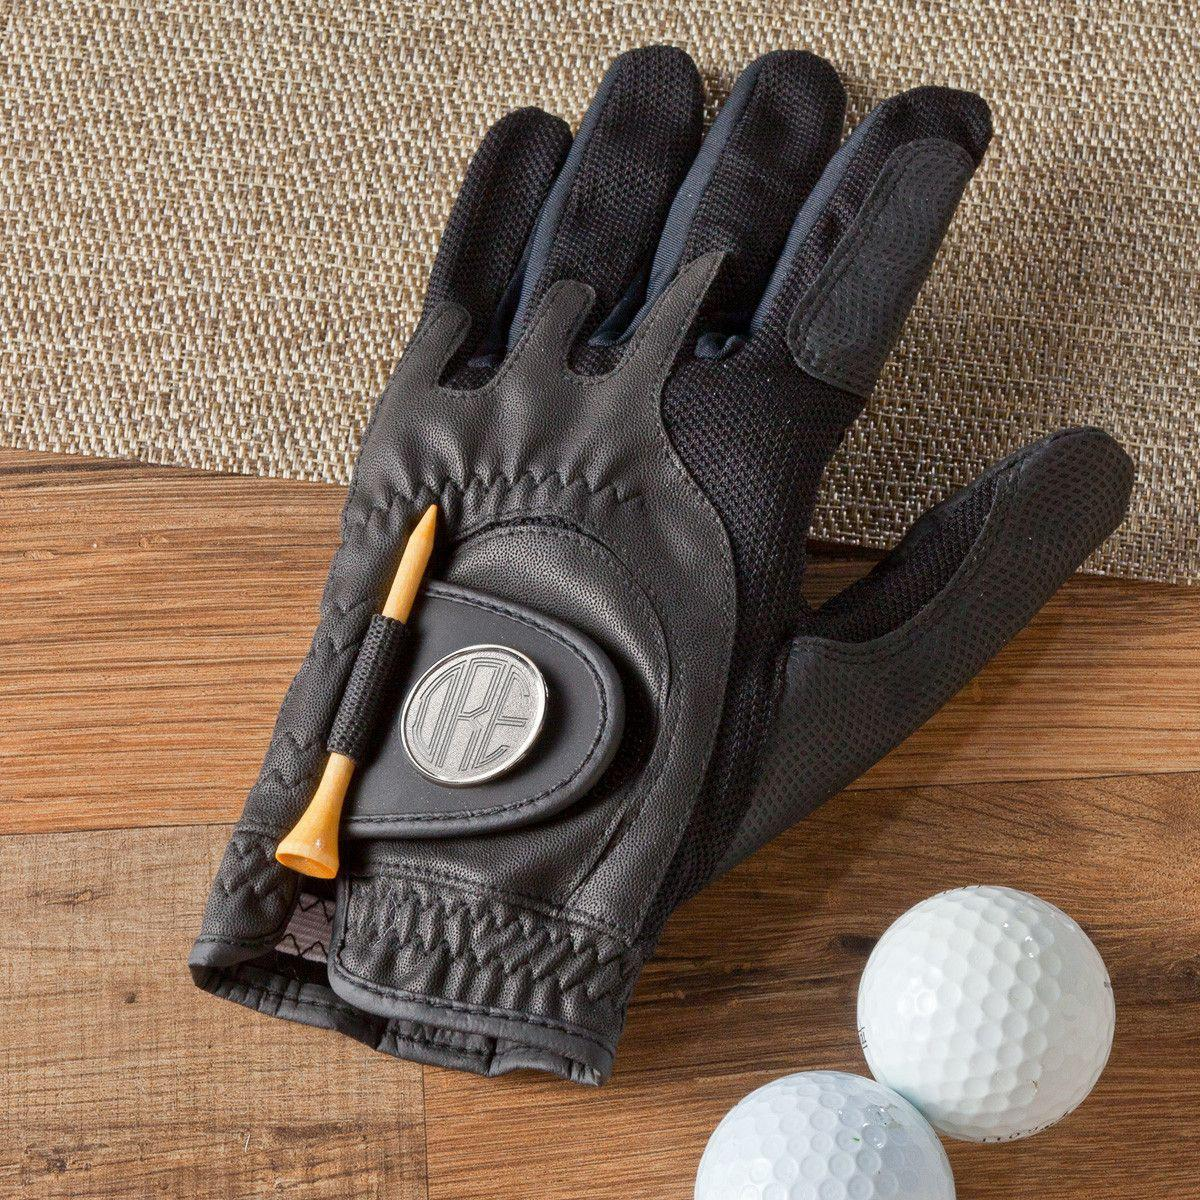 Personalized Golf Glove - Leather - Magnetic Ball Marker